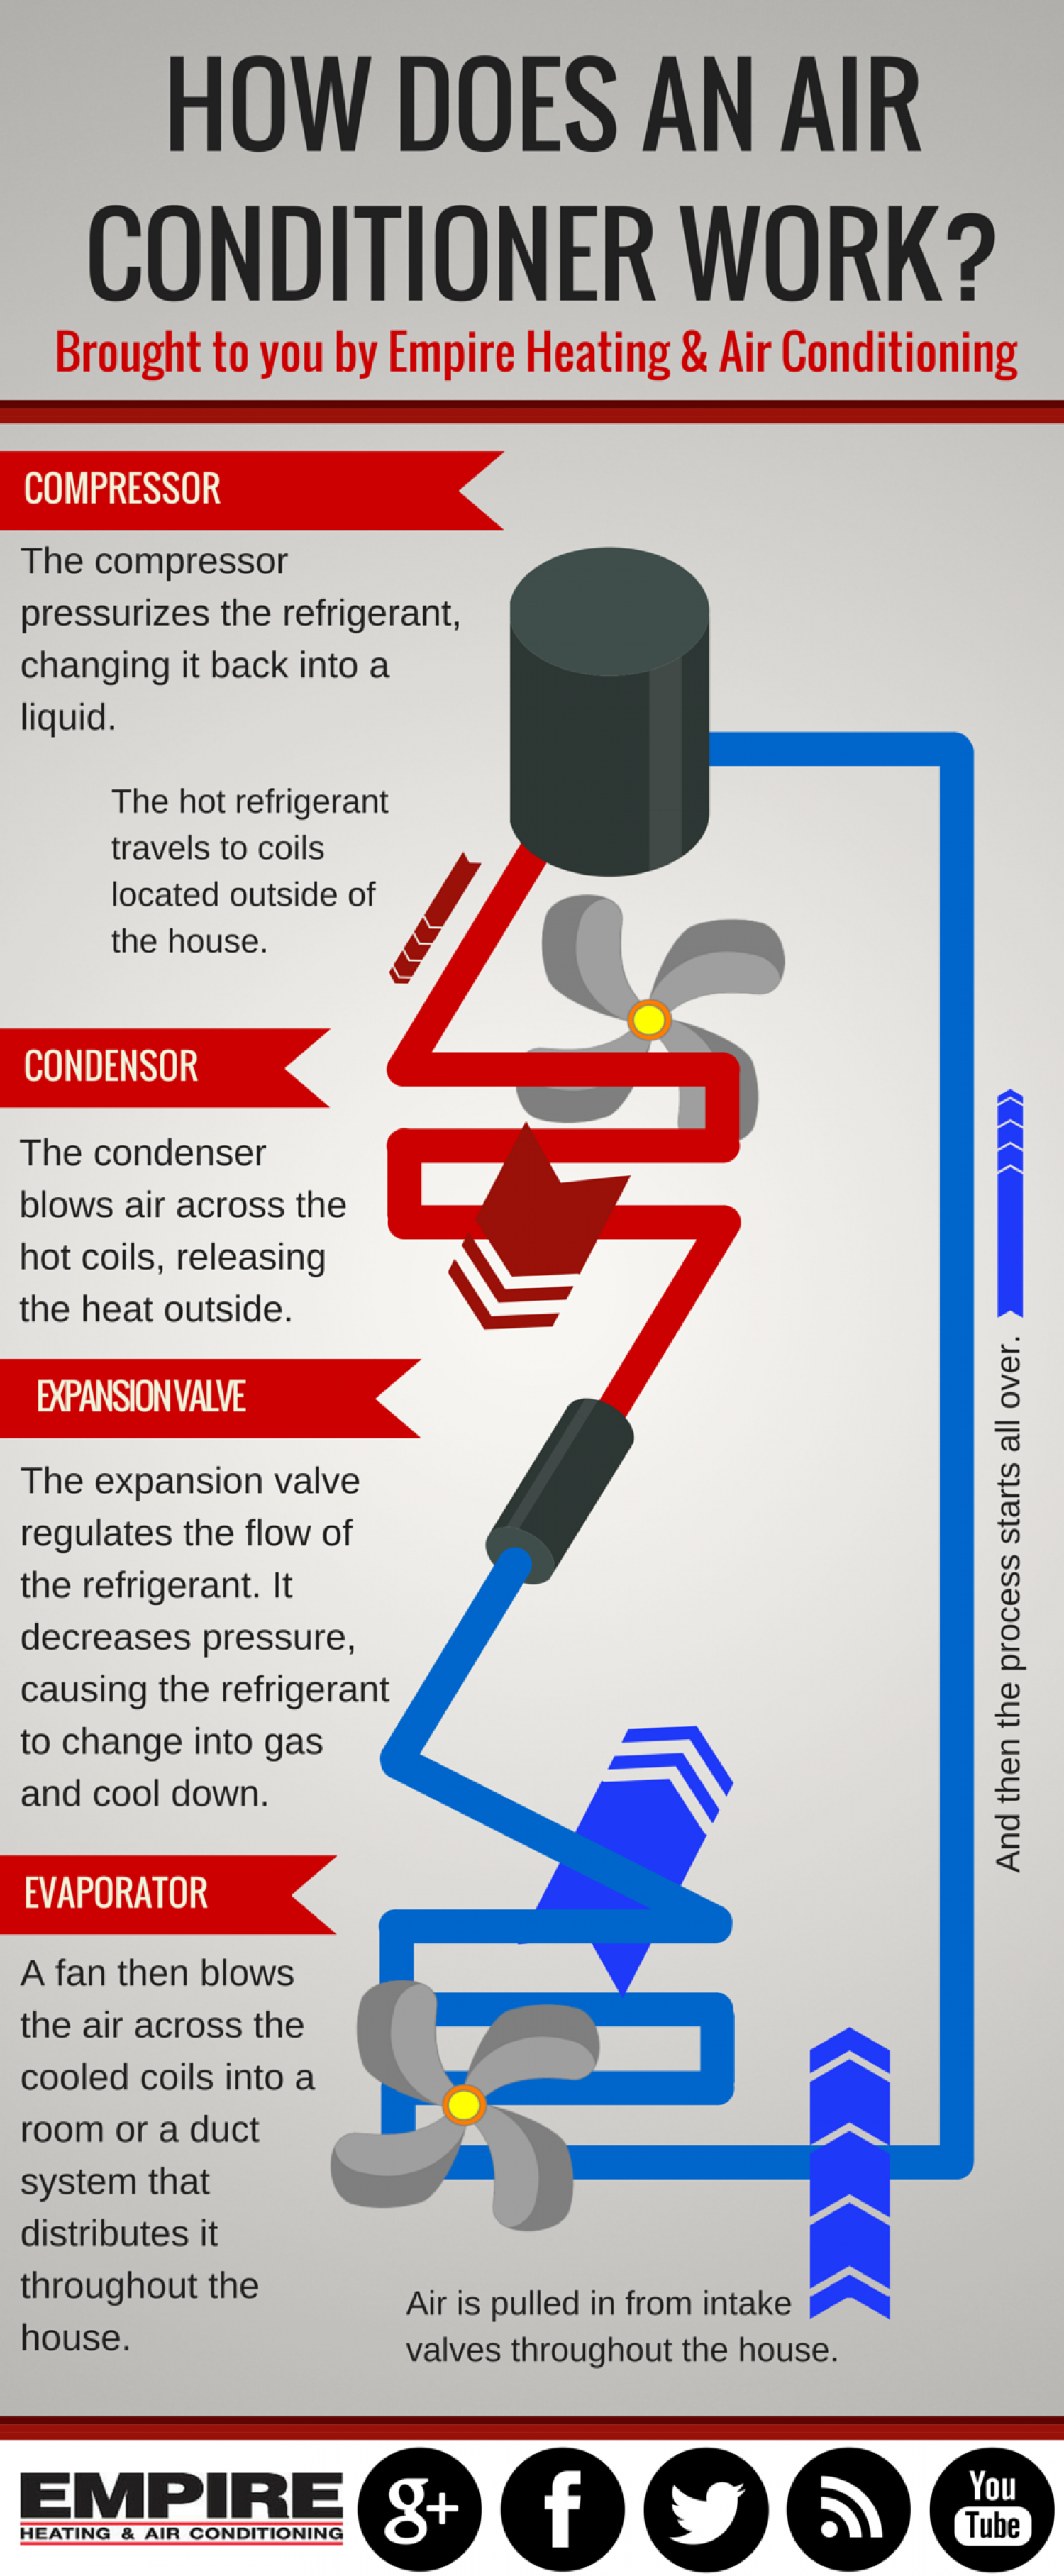 How Does An Air Conditioner Work? Infographic